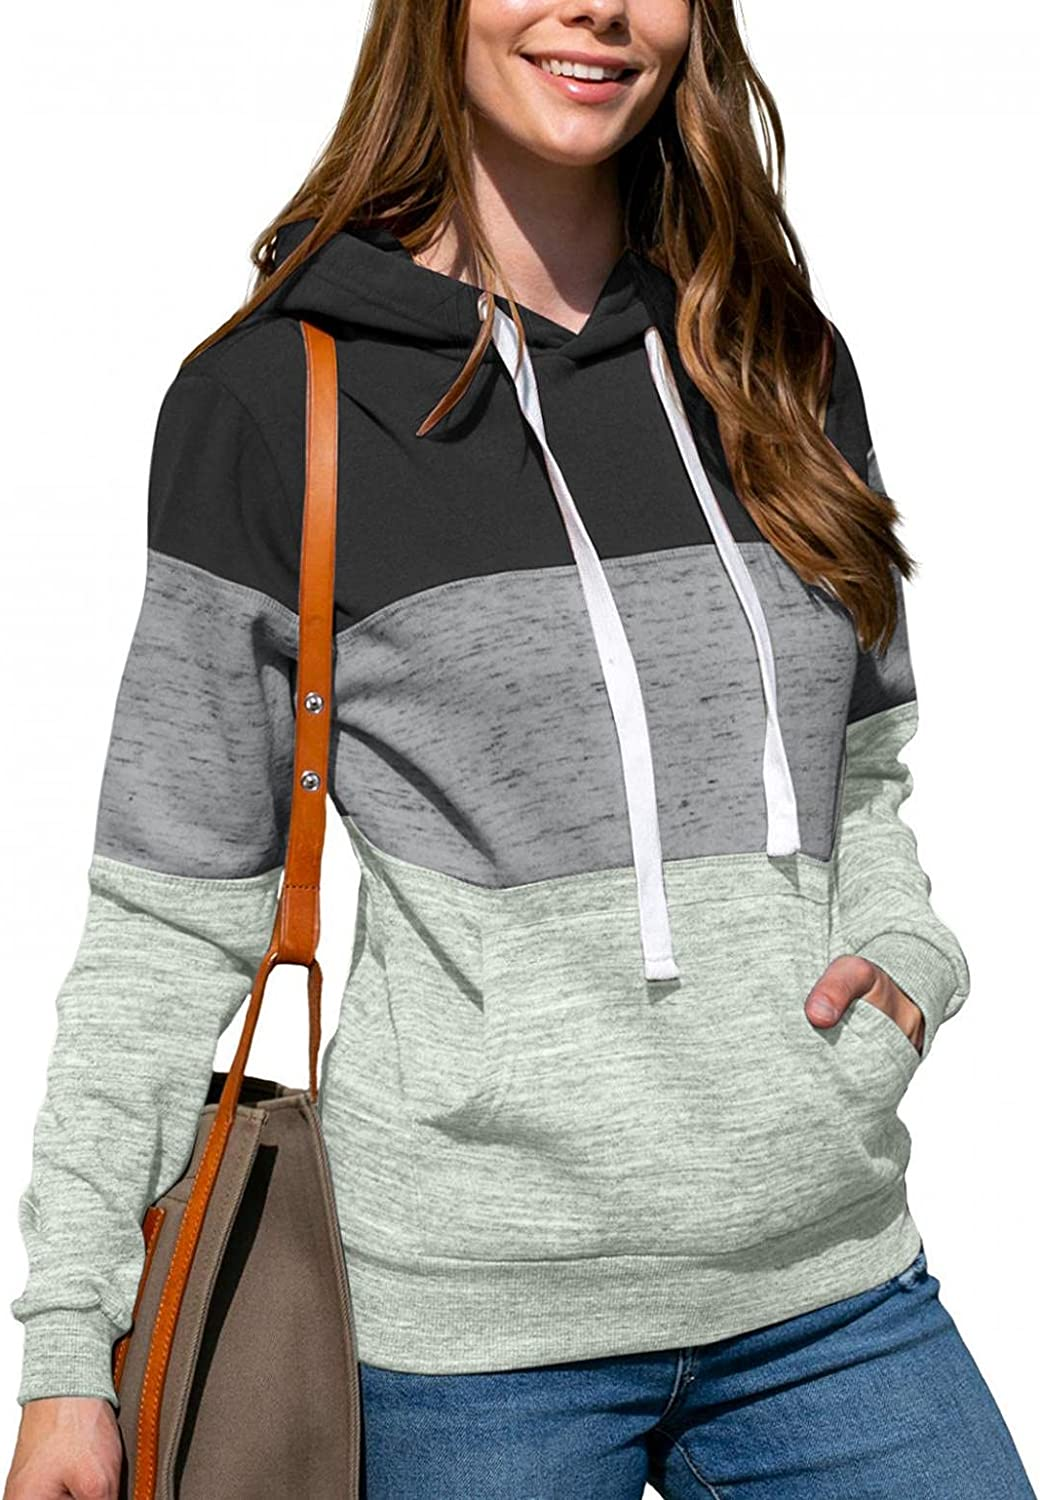 Haheyrte Hoodies for Women Long Sleeve Pullover Color Block Hooded Sweatshirt Thin Drawstring Shirts Tops with Pockets